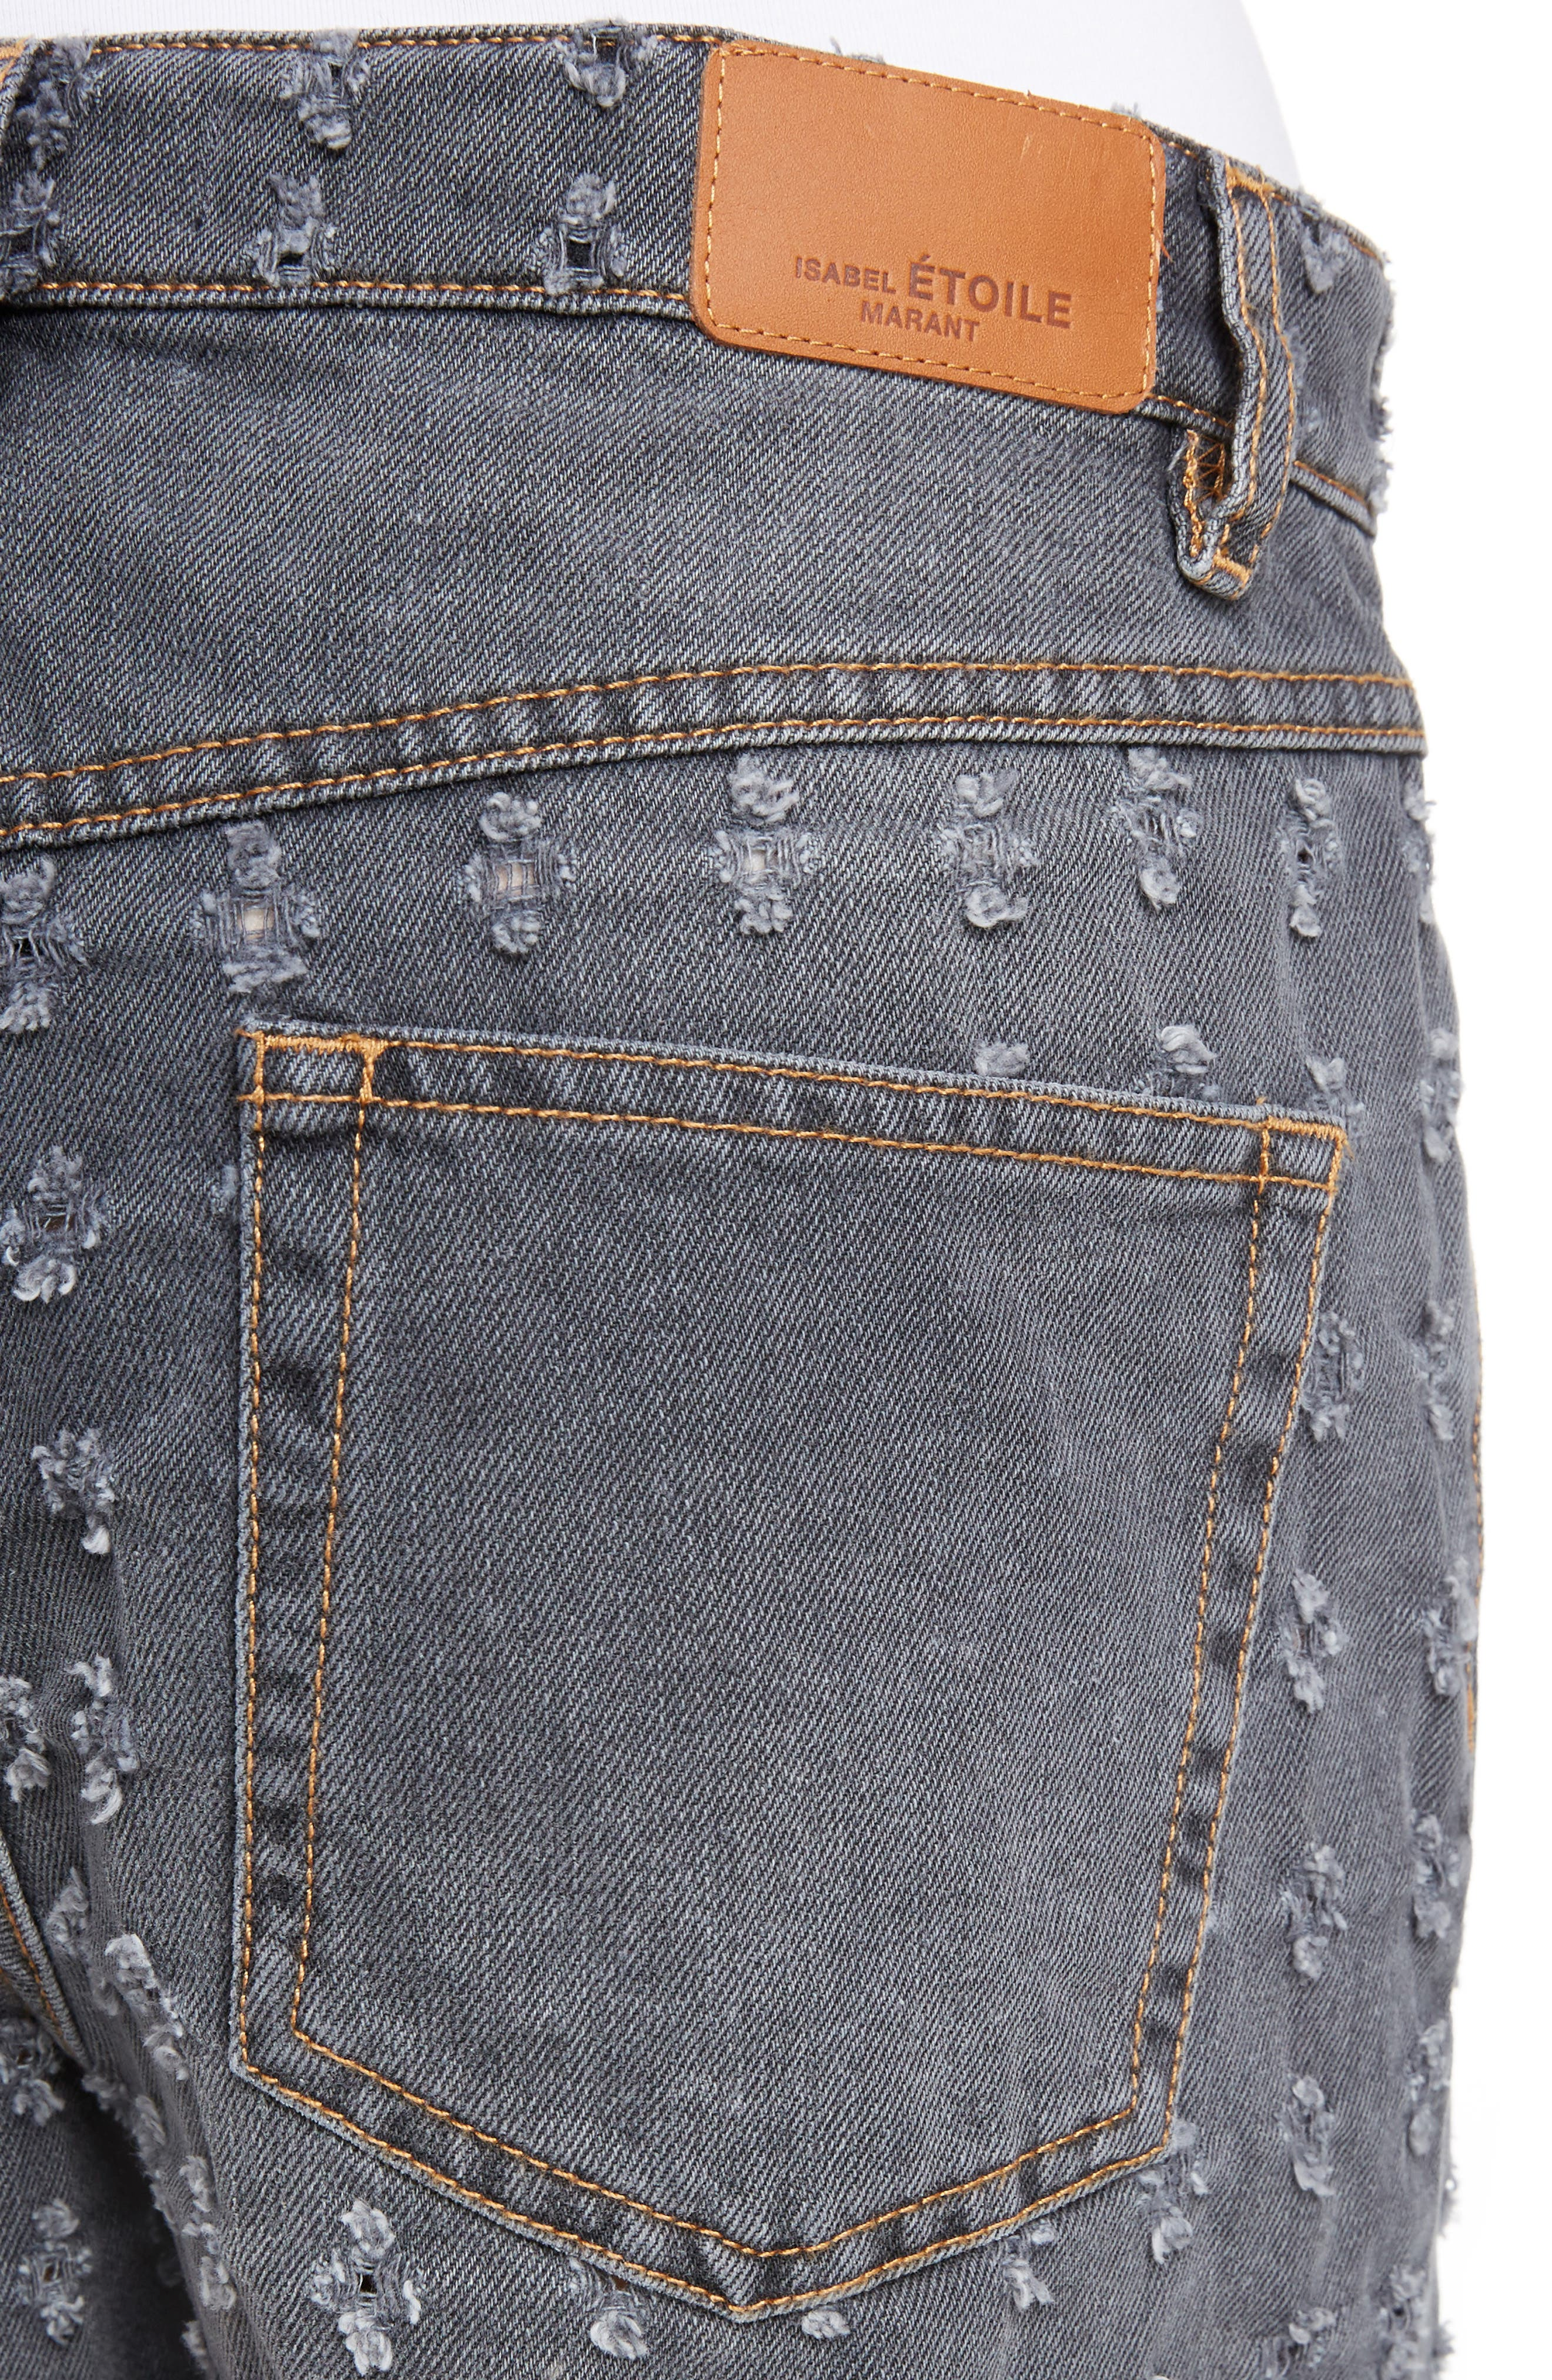 Isabel Marant Étoile Ripped Denim Shorts,                             Alternate thumbnail 7, color,                             Grey